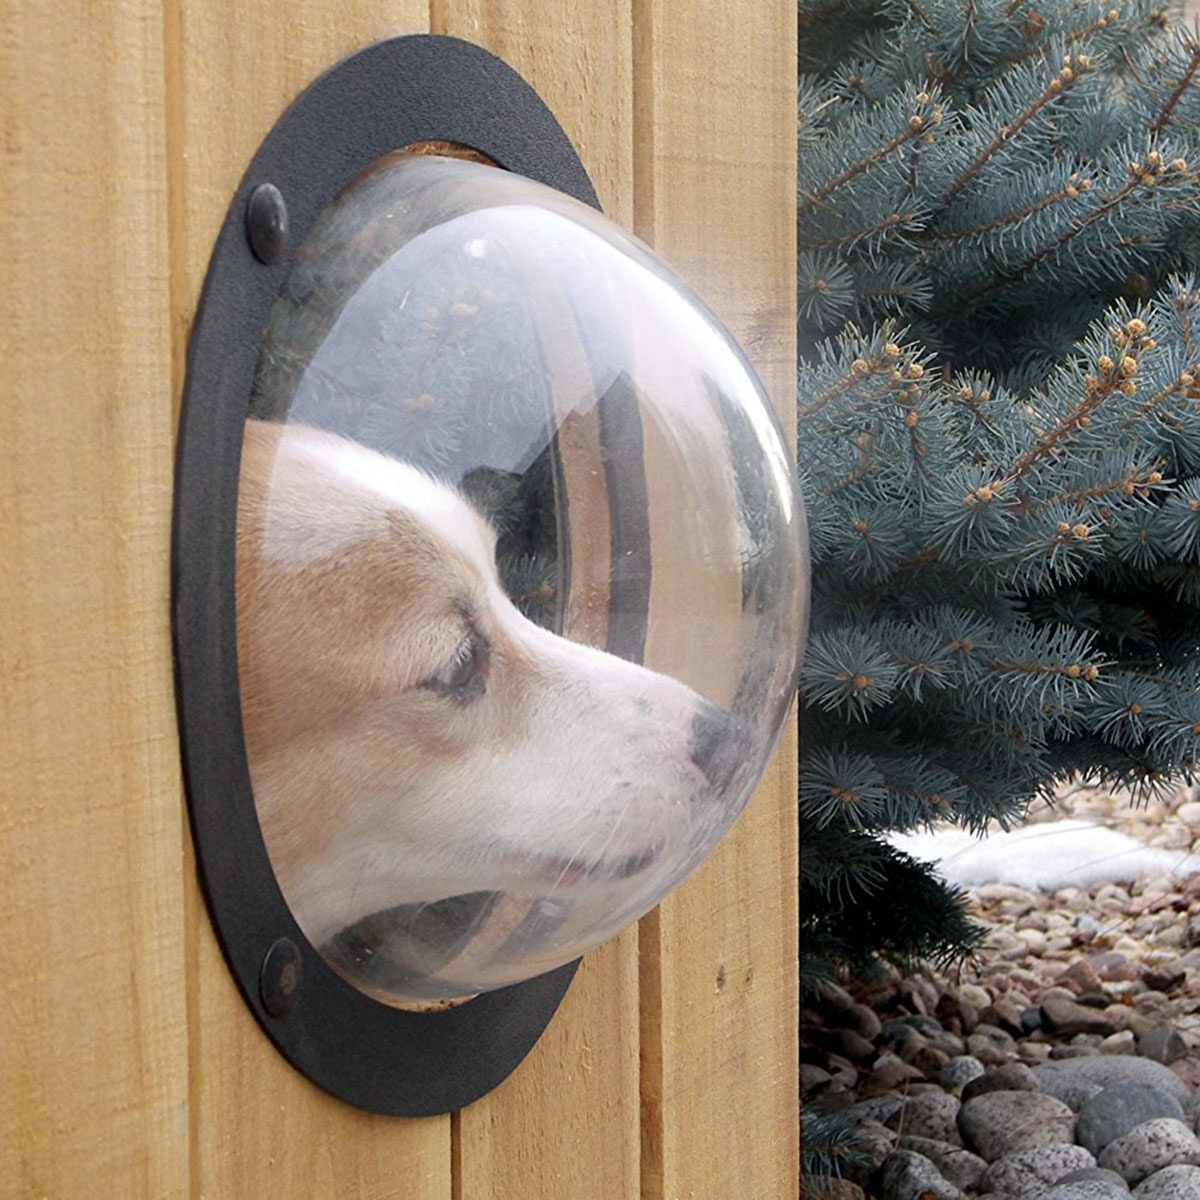 This fence window so your dog can keep tabs on the mail carrier 🐾